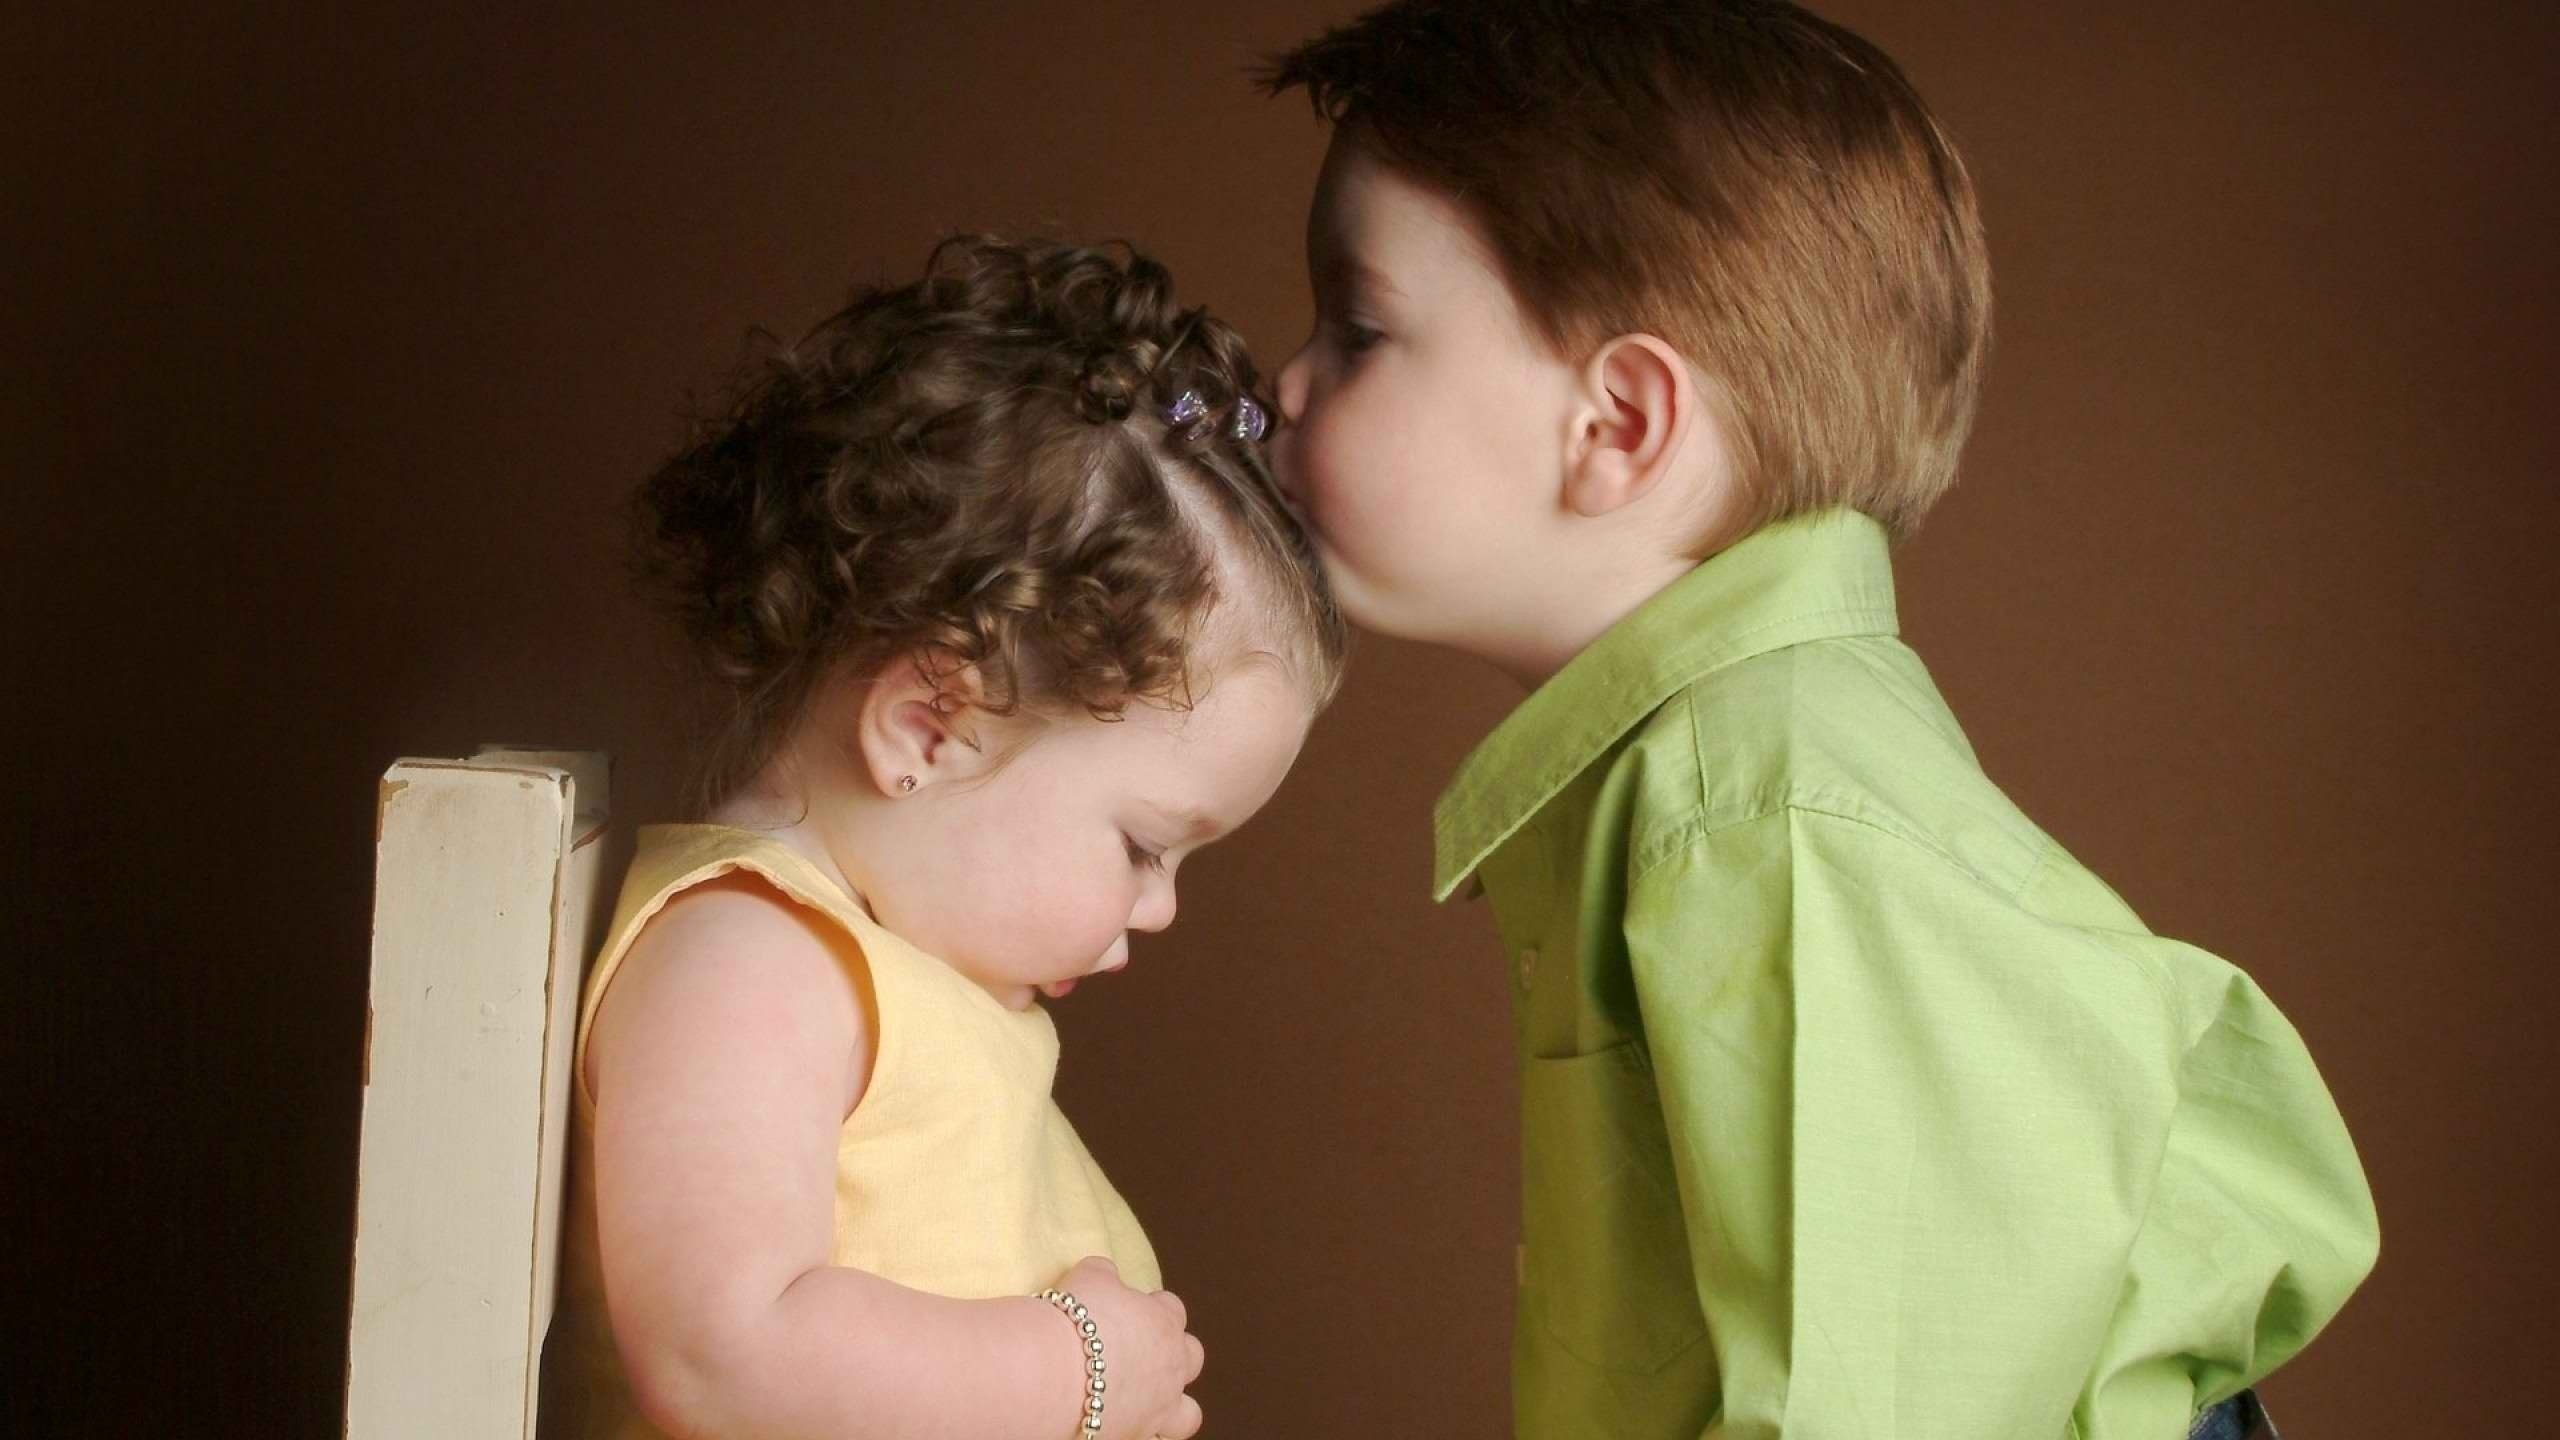 Cute Baby Love Couple Wallpaper Cute Baby Couple In Brother And Sister Images Hd 2560x1440 Wallpaper Teahub Io